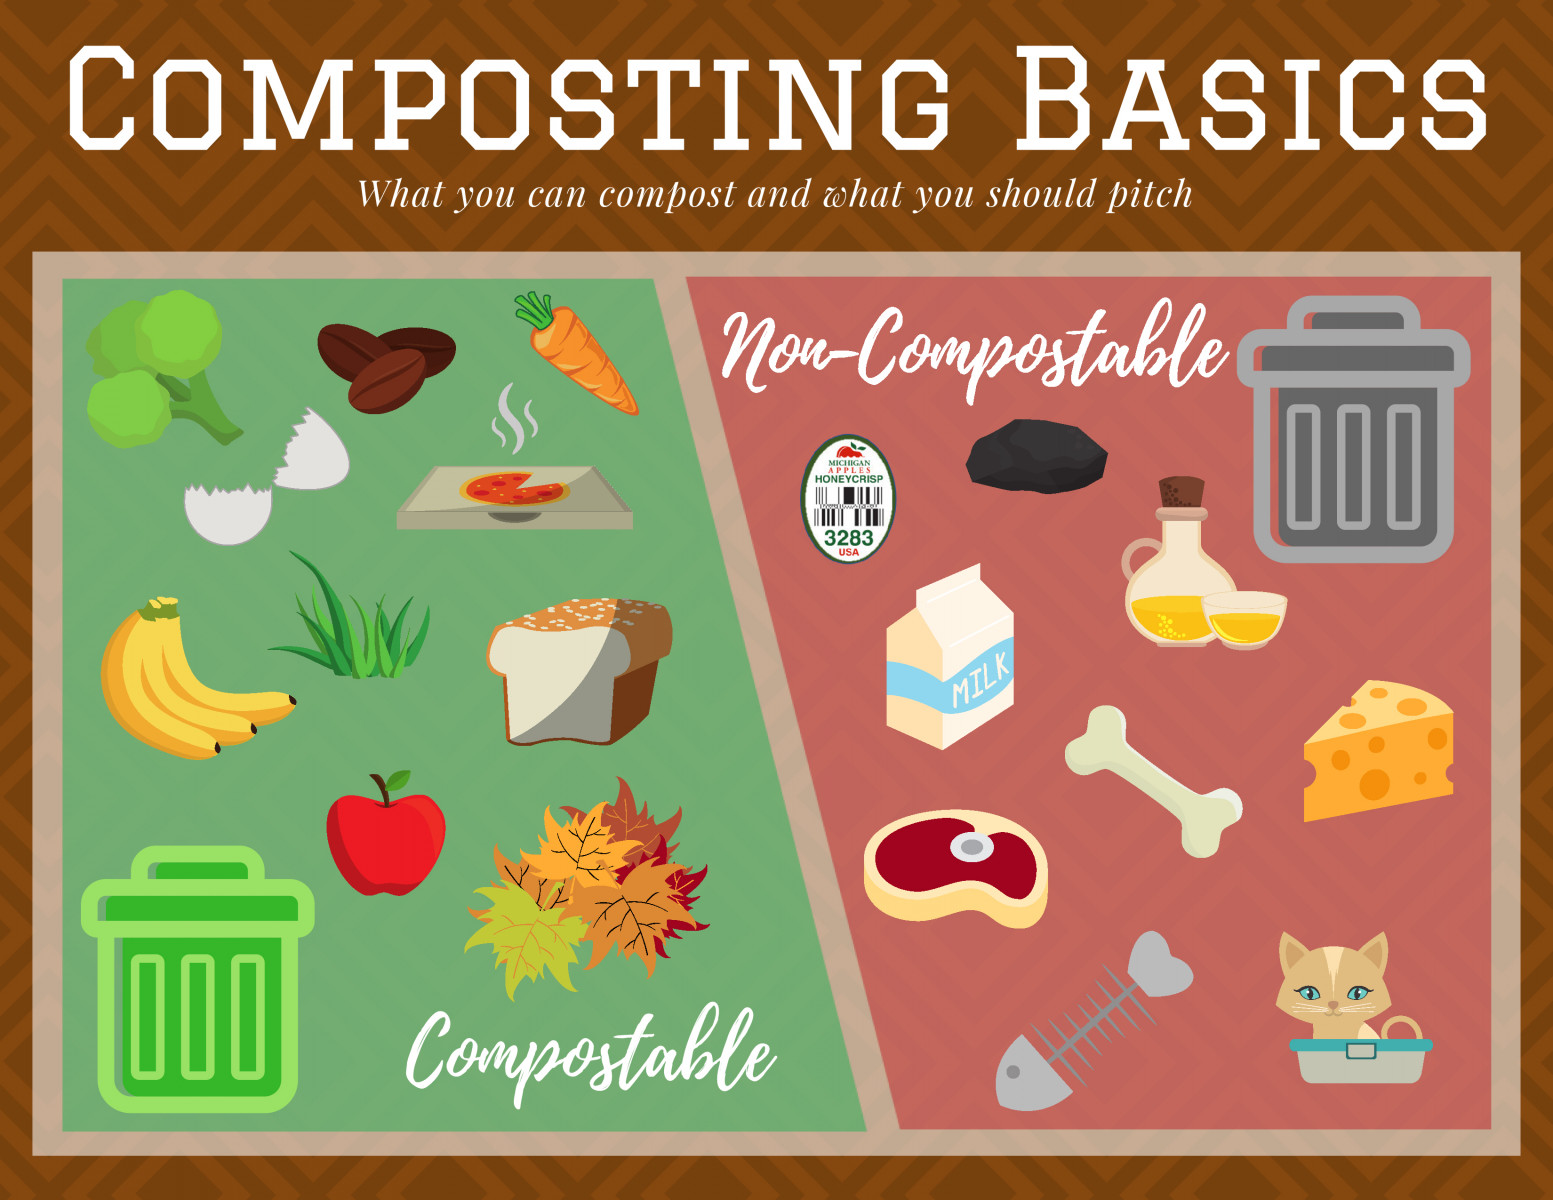 Composting basics graphic